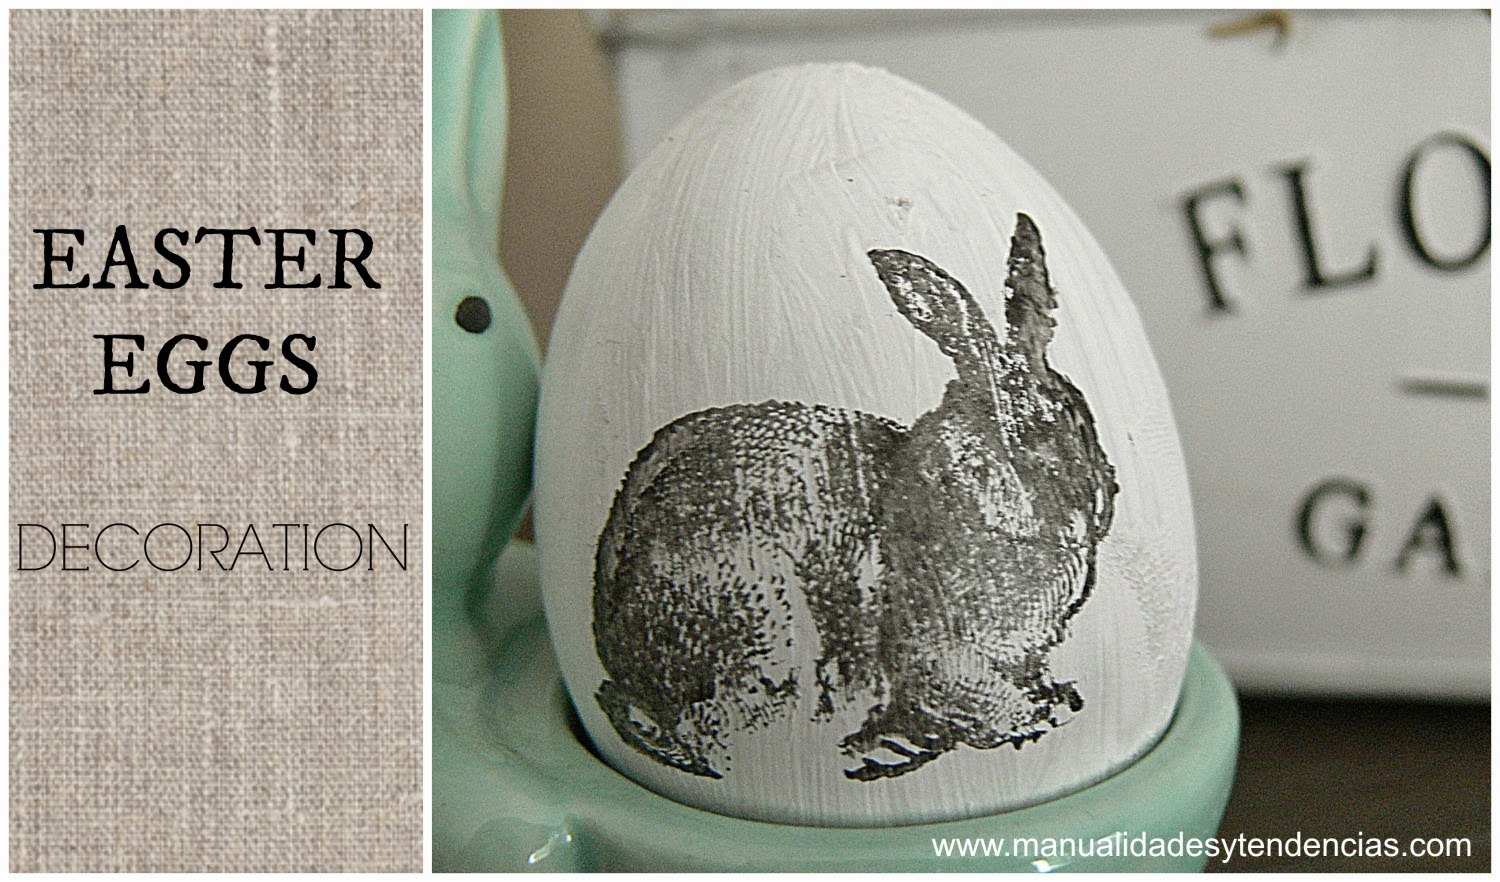 Easter eggs decoration tutorial